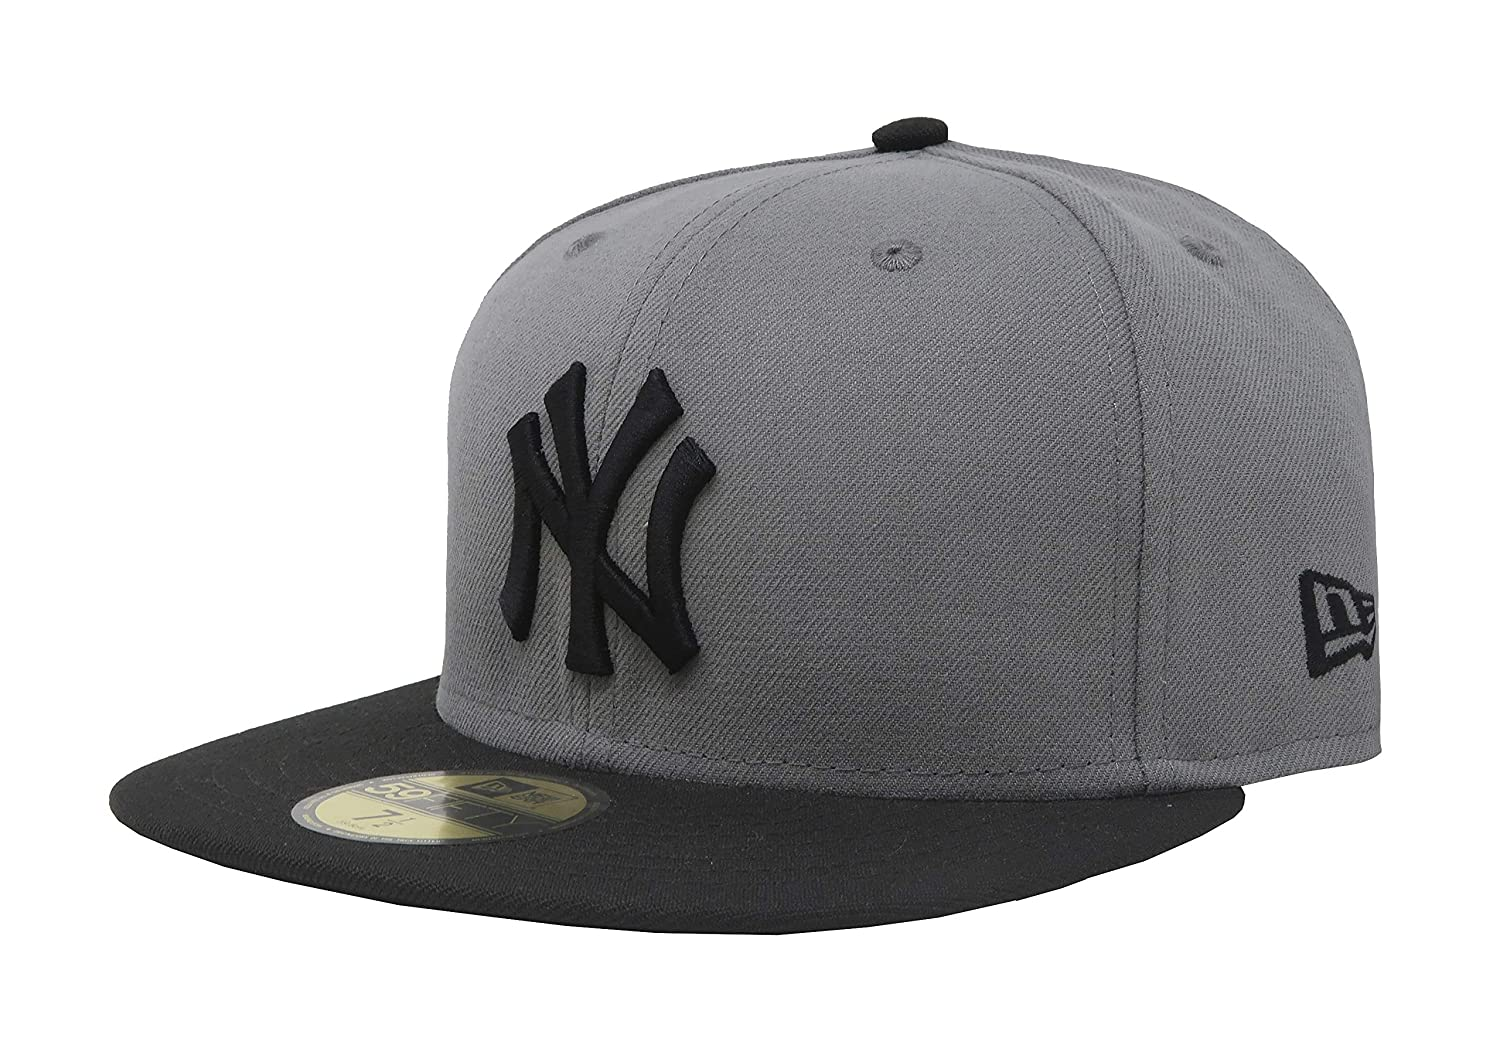 f55e00364b473 Amazon.com   New Era 59Fifty Hat New York Yankees MLB Basic Storm Gray Black  Fitted Cap   Sports   Outdoors